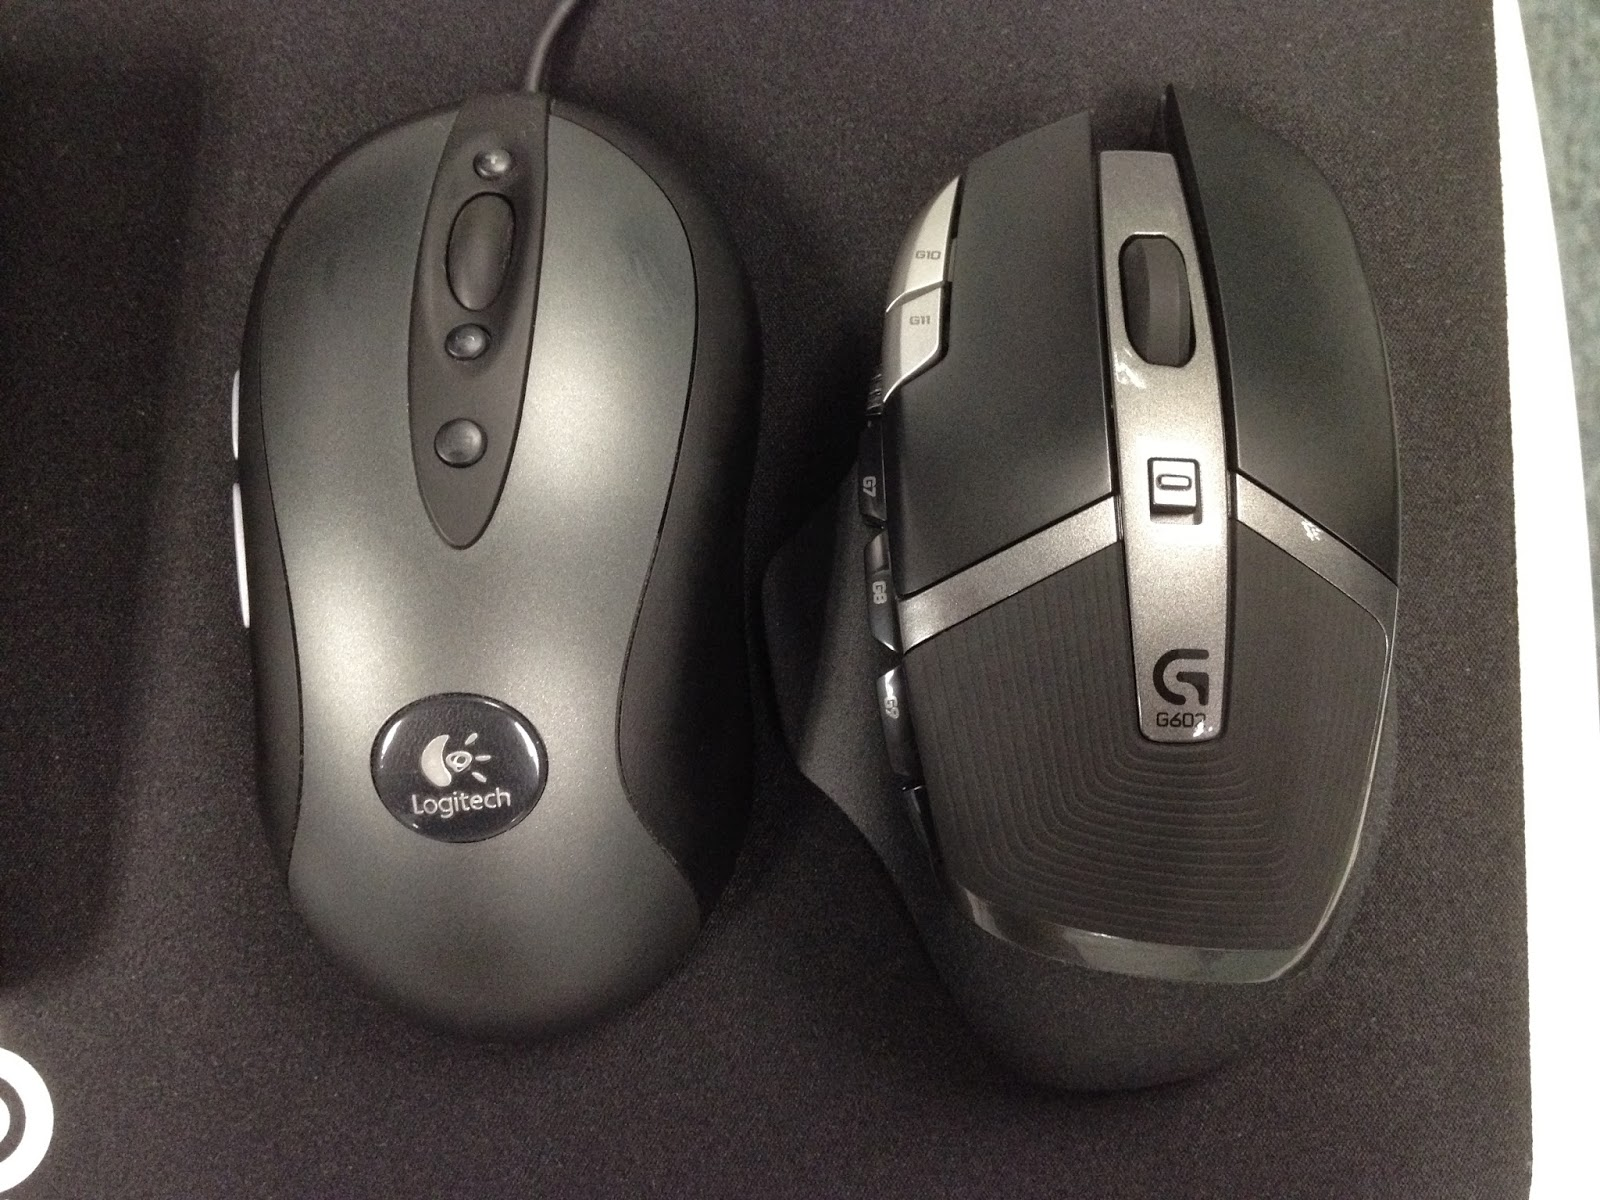 TCHW Reviews: Unboxing & Review: Logitech G602 Wireless